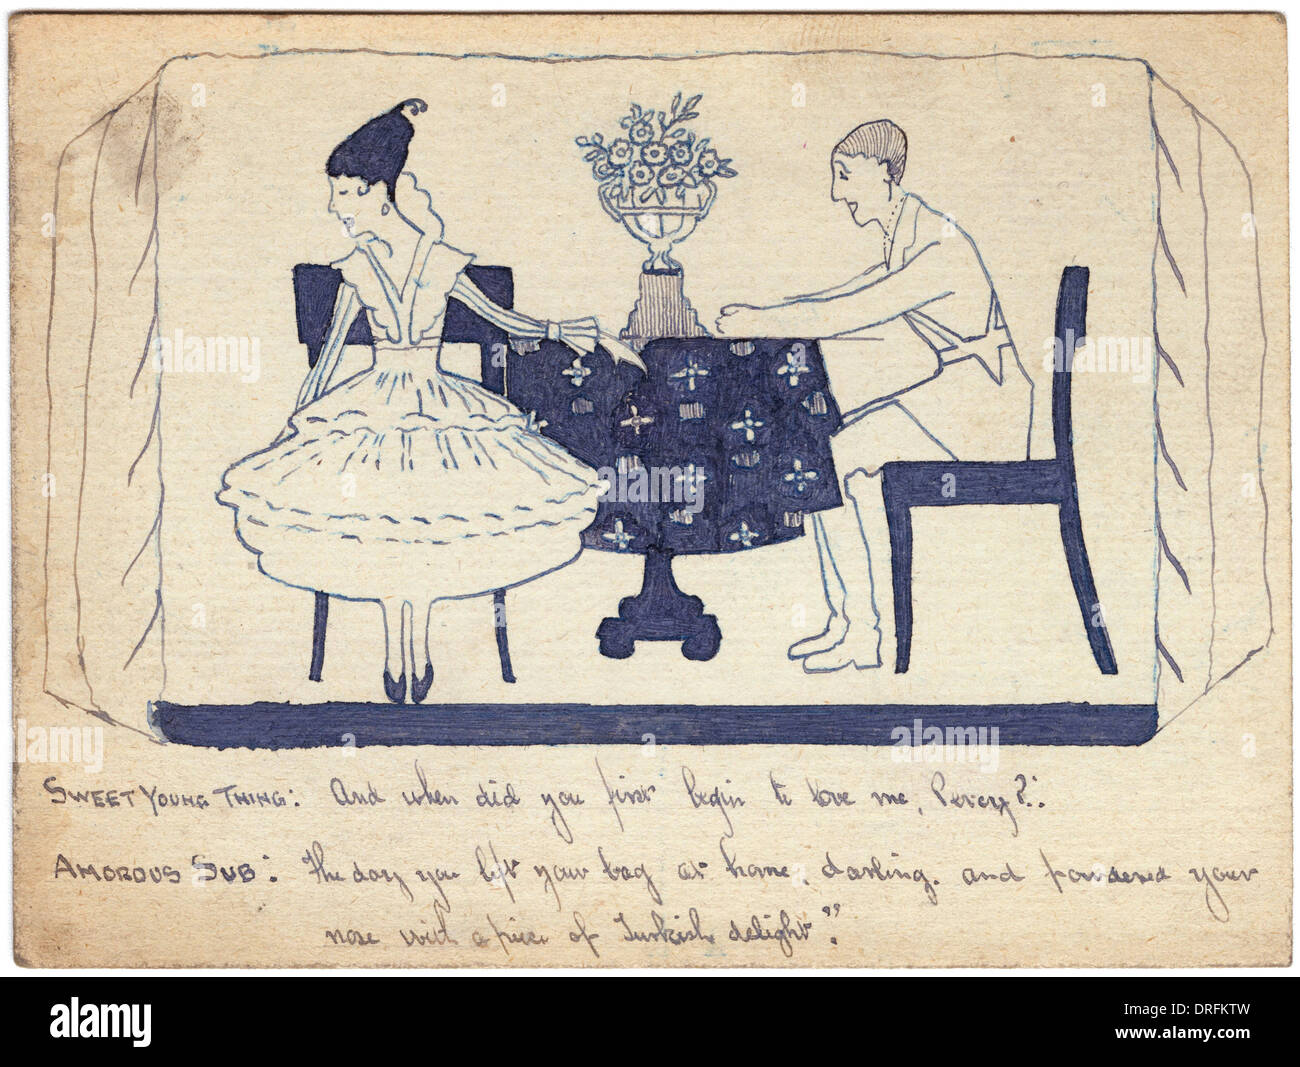 Wartime courtship by George Ranstead - Stock Image